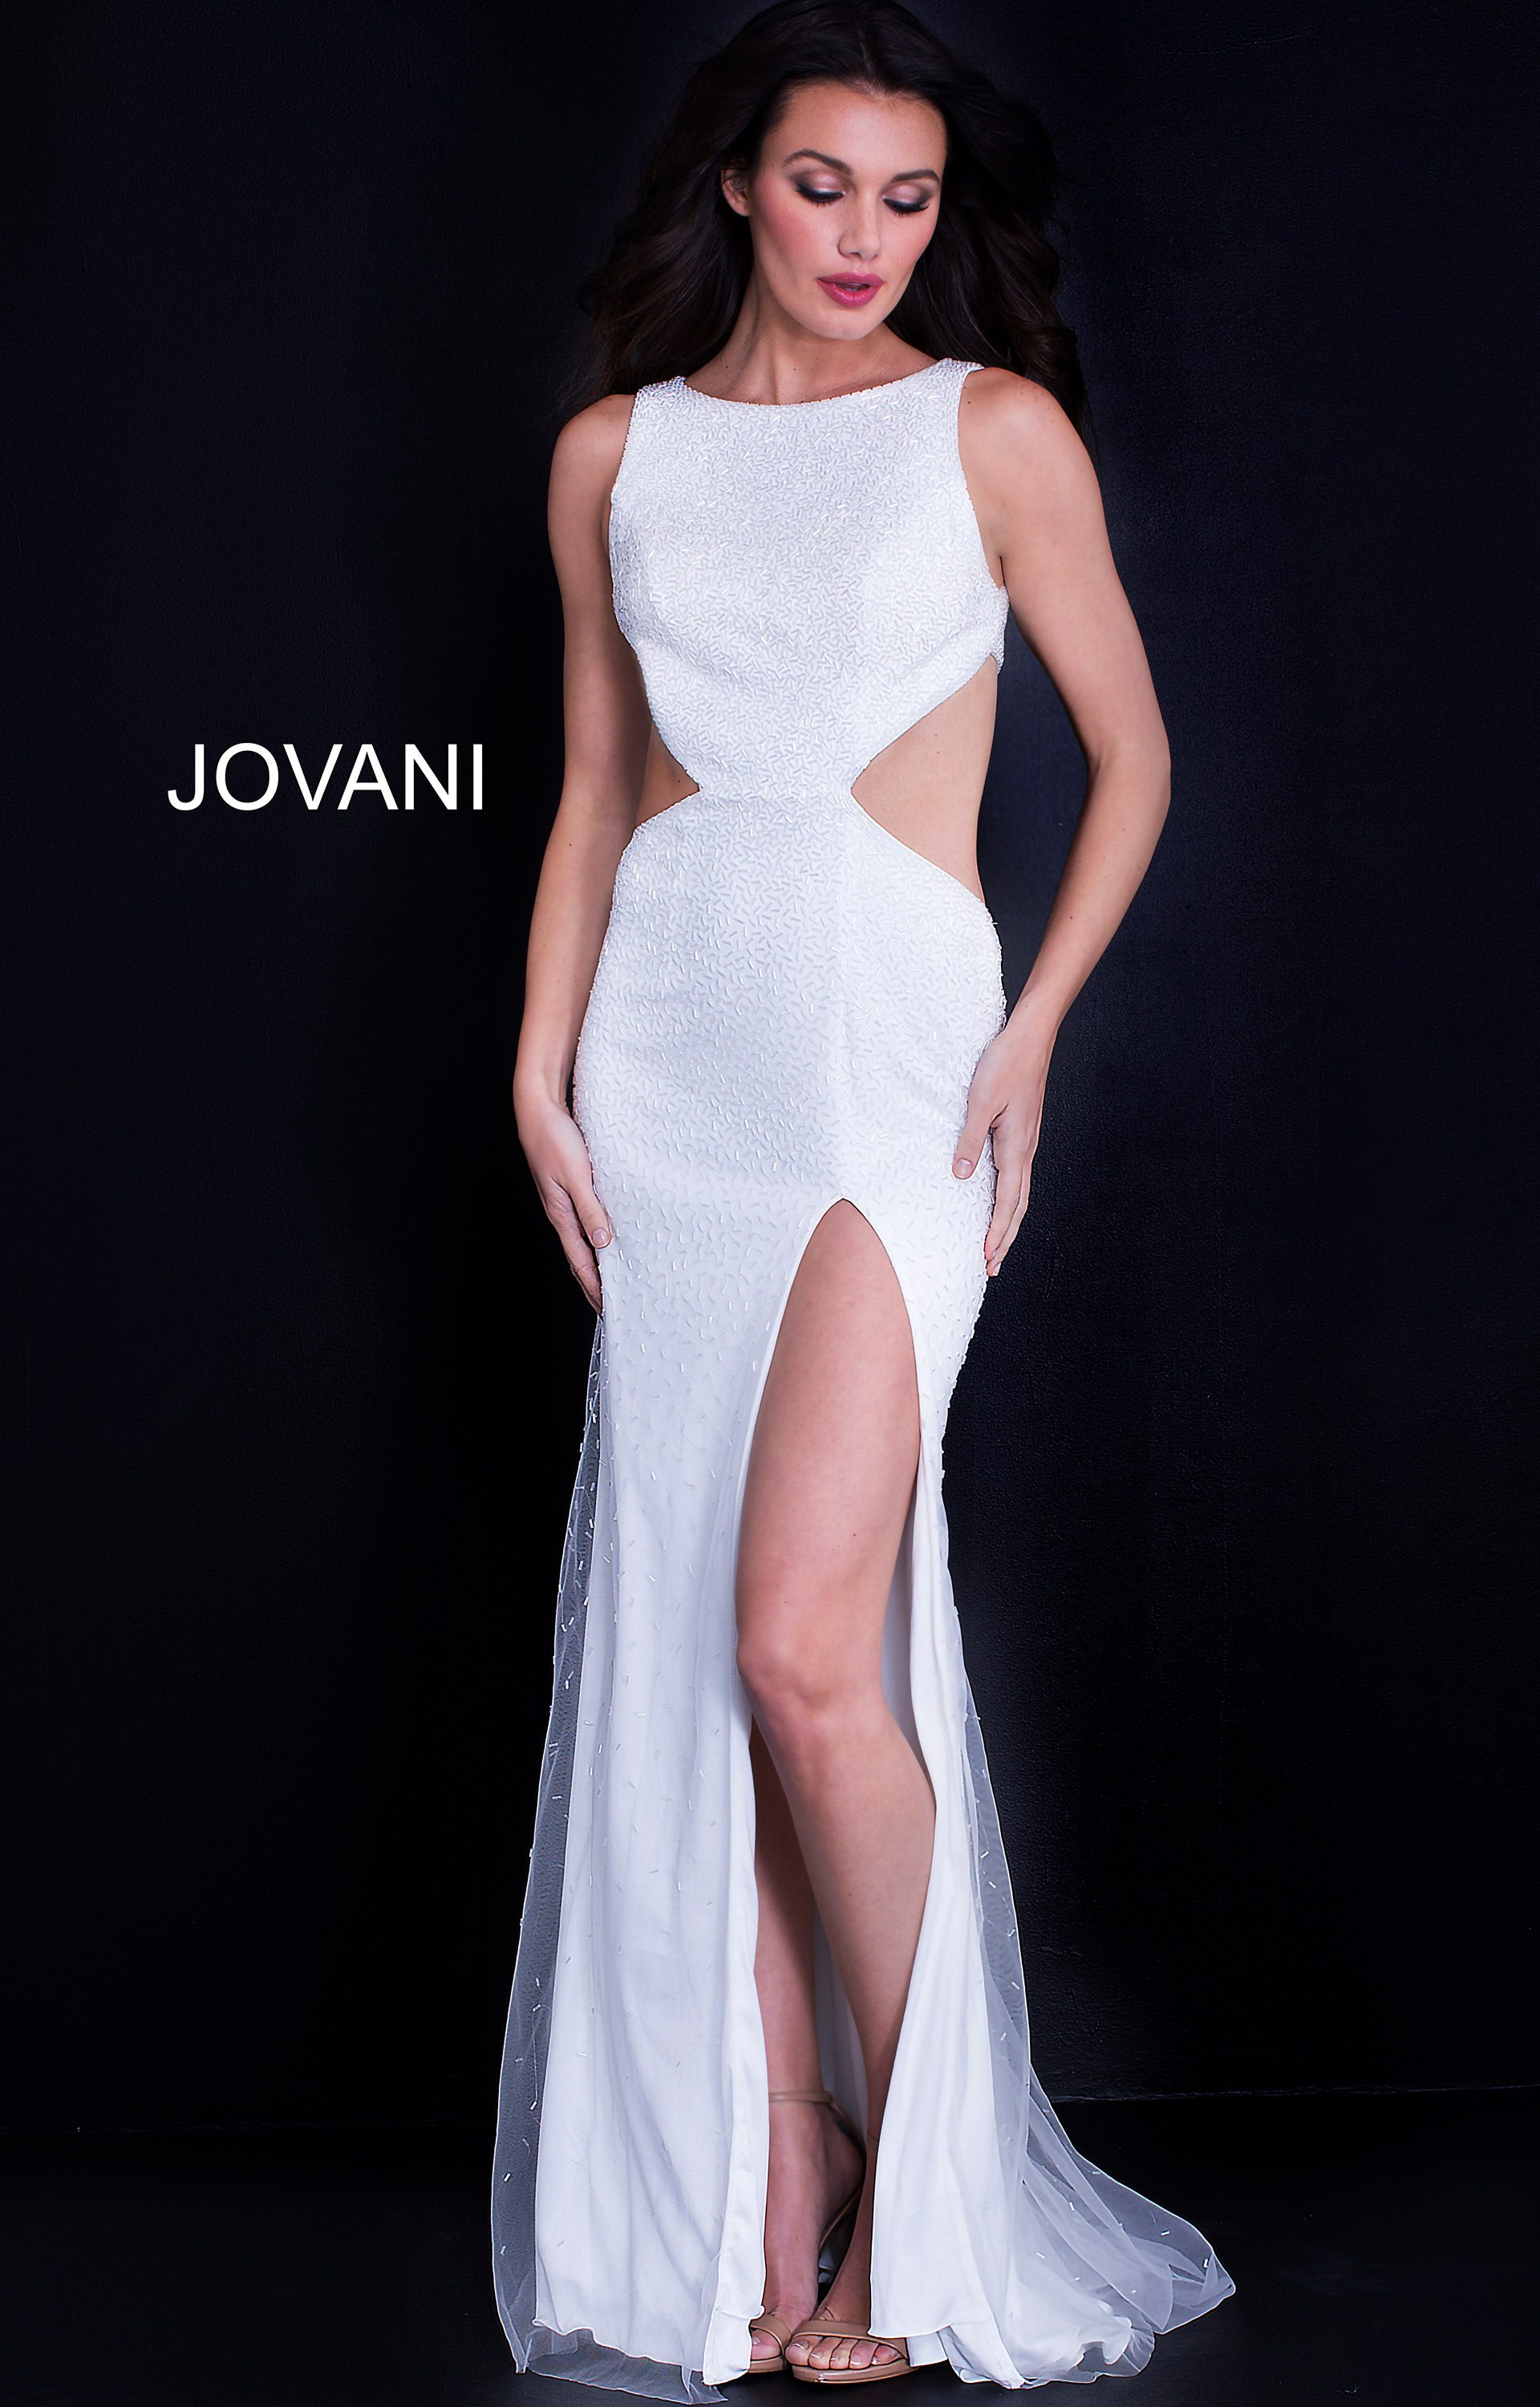 Jovani 59655 - High Neck Gown with Side Cutouts and Open Back Prom Dress